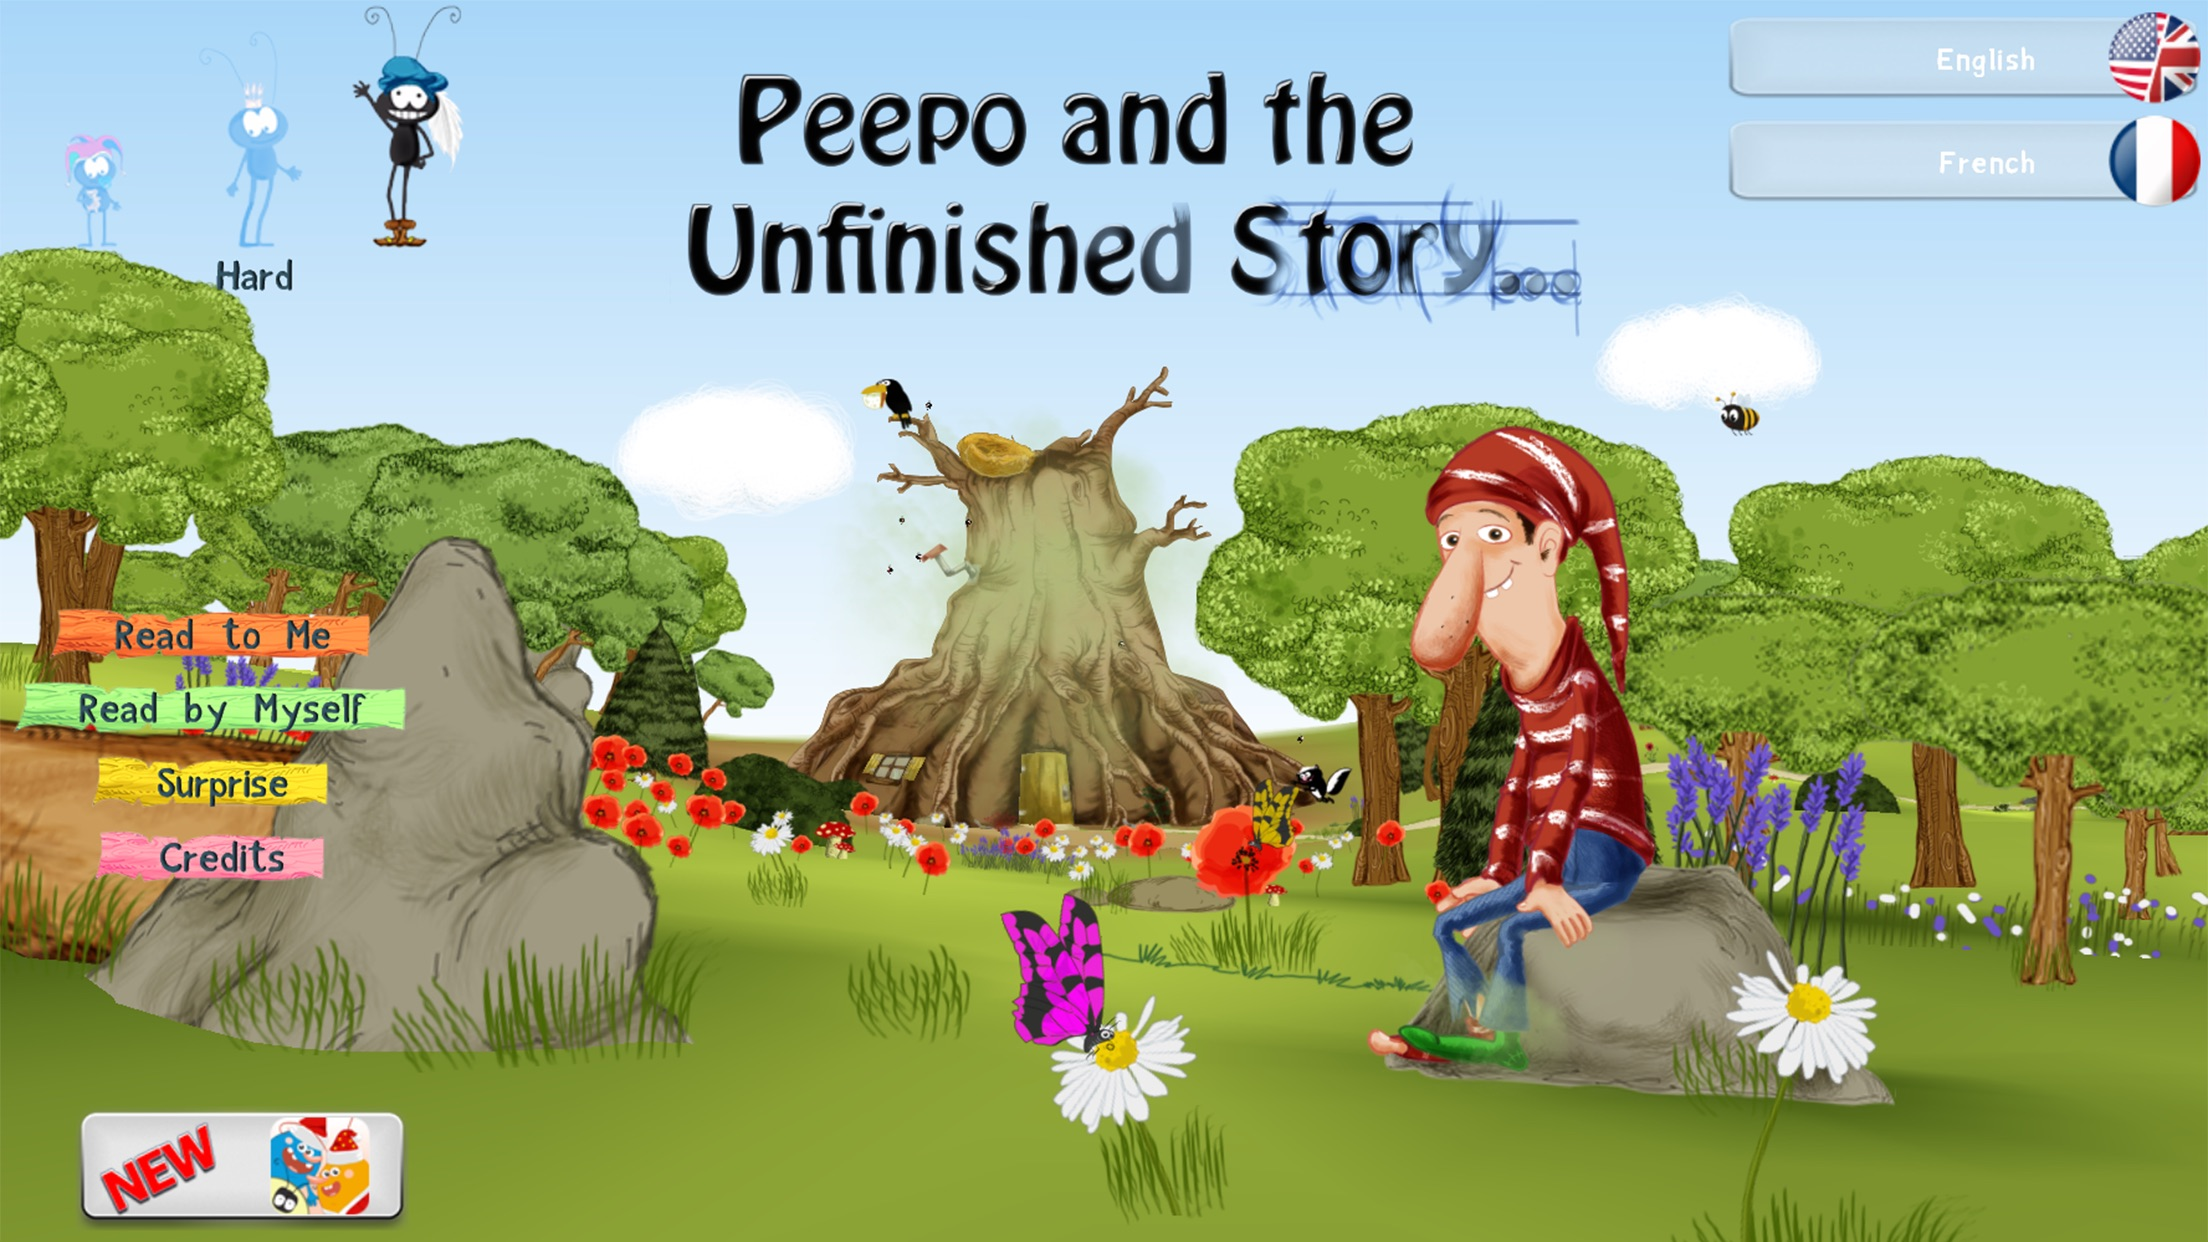 Peepo and the Unfinished Story - Free Screenshot